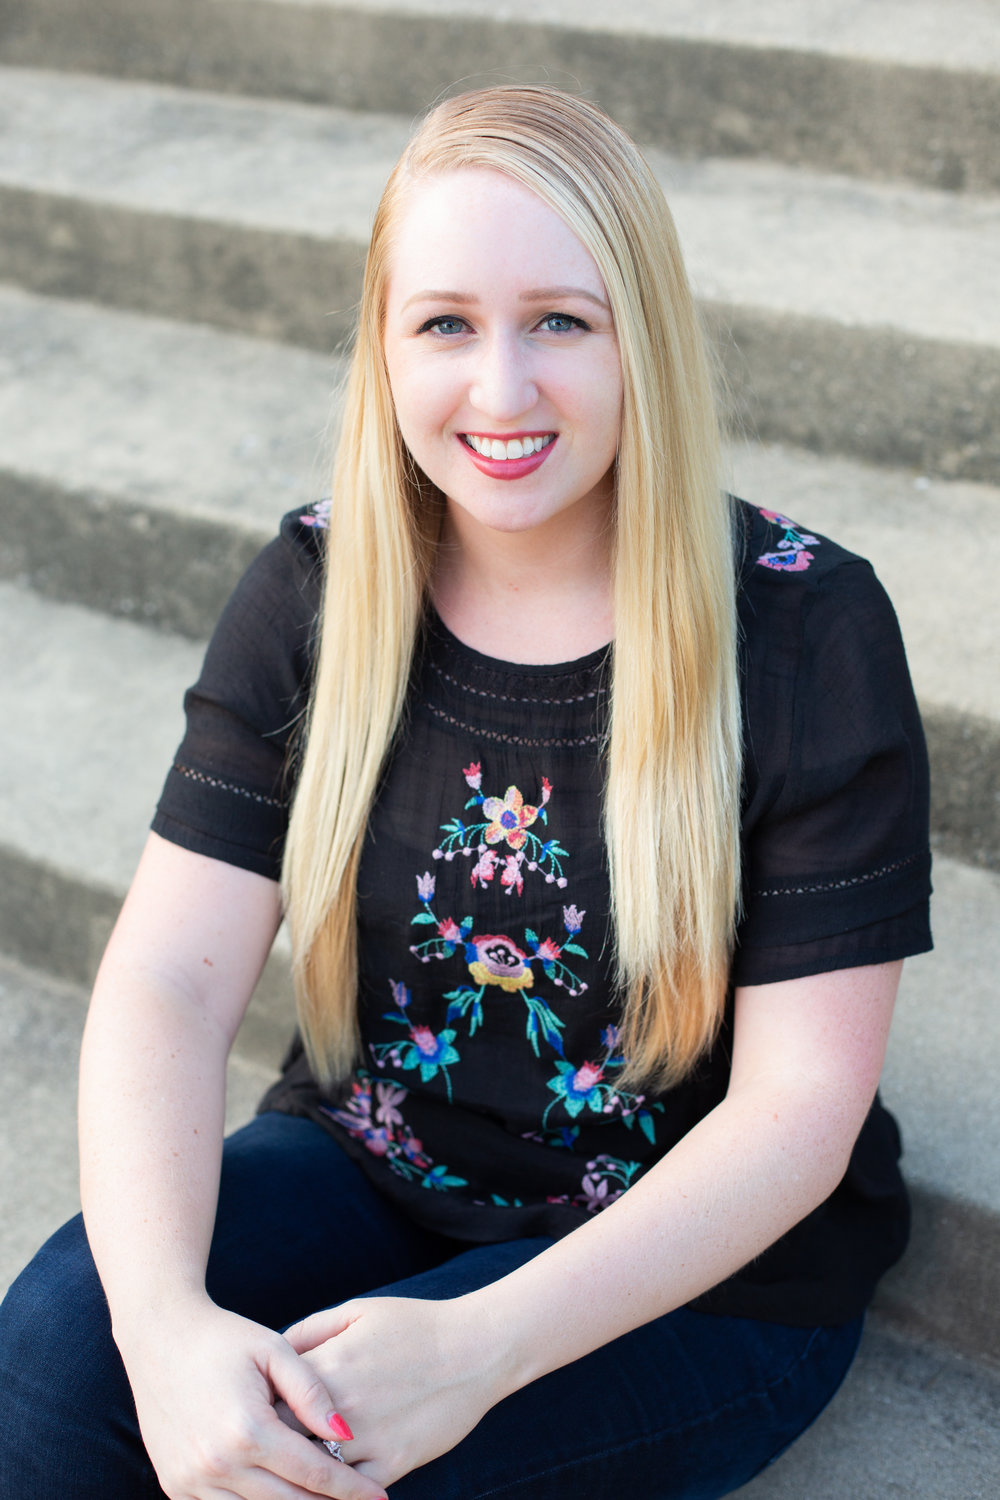 Kaitlin Jager, Creative Director - Kaitlin is our marketing and design guru! Her primary responsibilities include graphic design, brand management, and marketing initiatives. Additionally,she manages our social media and assists with event planning. Outside of the office, Kaitlin enjoys spending time with her fiancé' Brice and Pomeranian Violet. She also enjoys cooking, travel, tennis, and spending time outdoors.